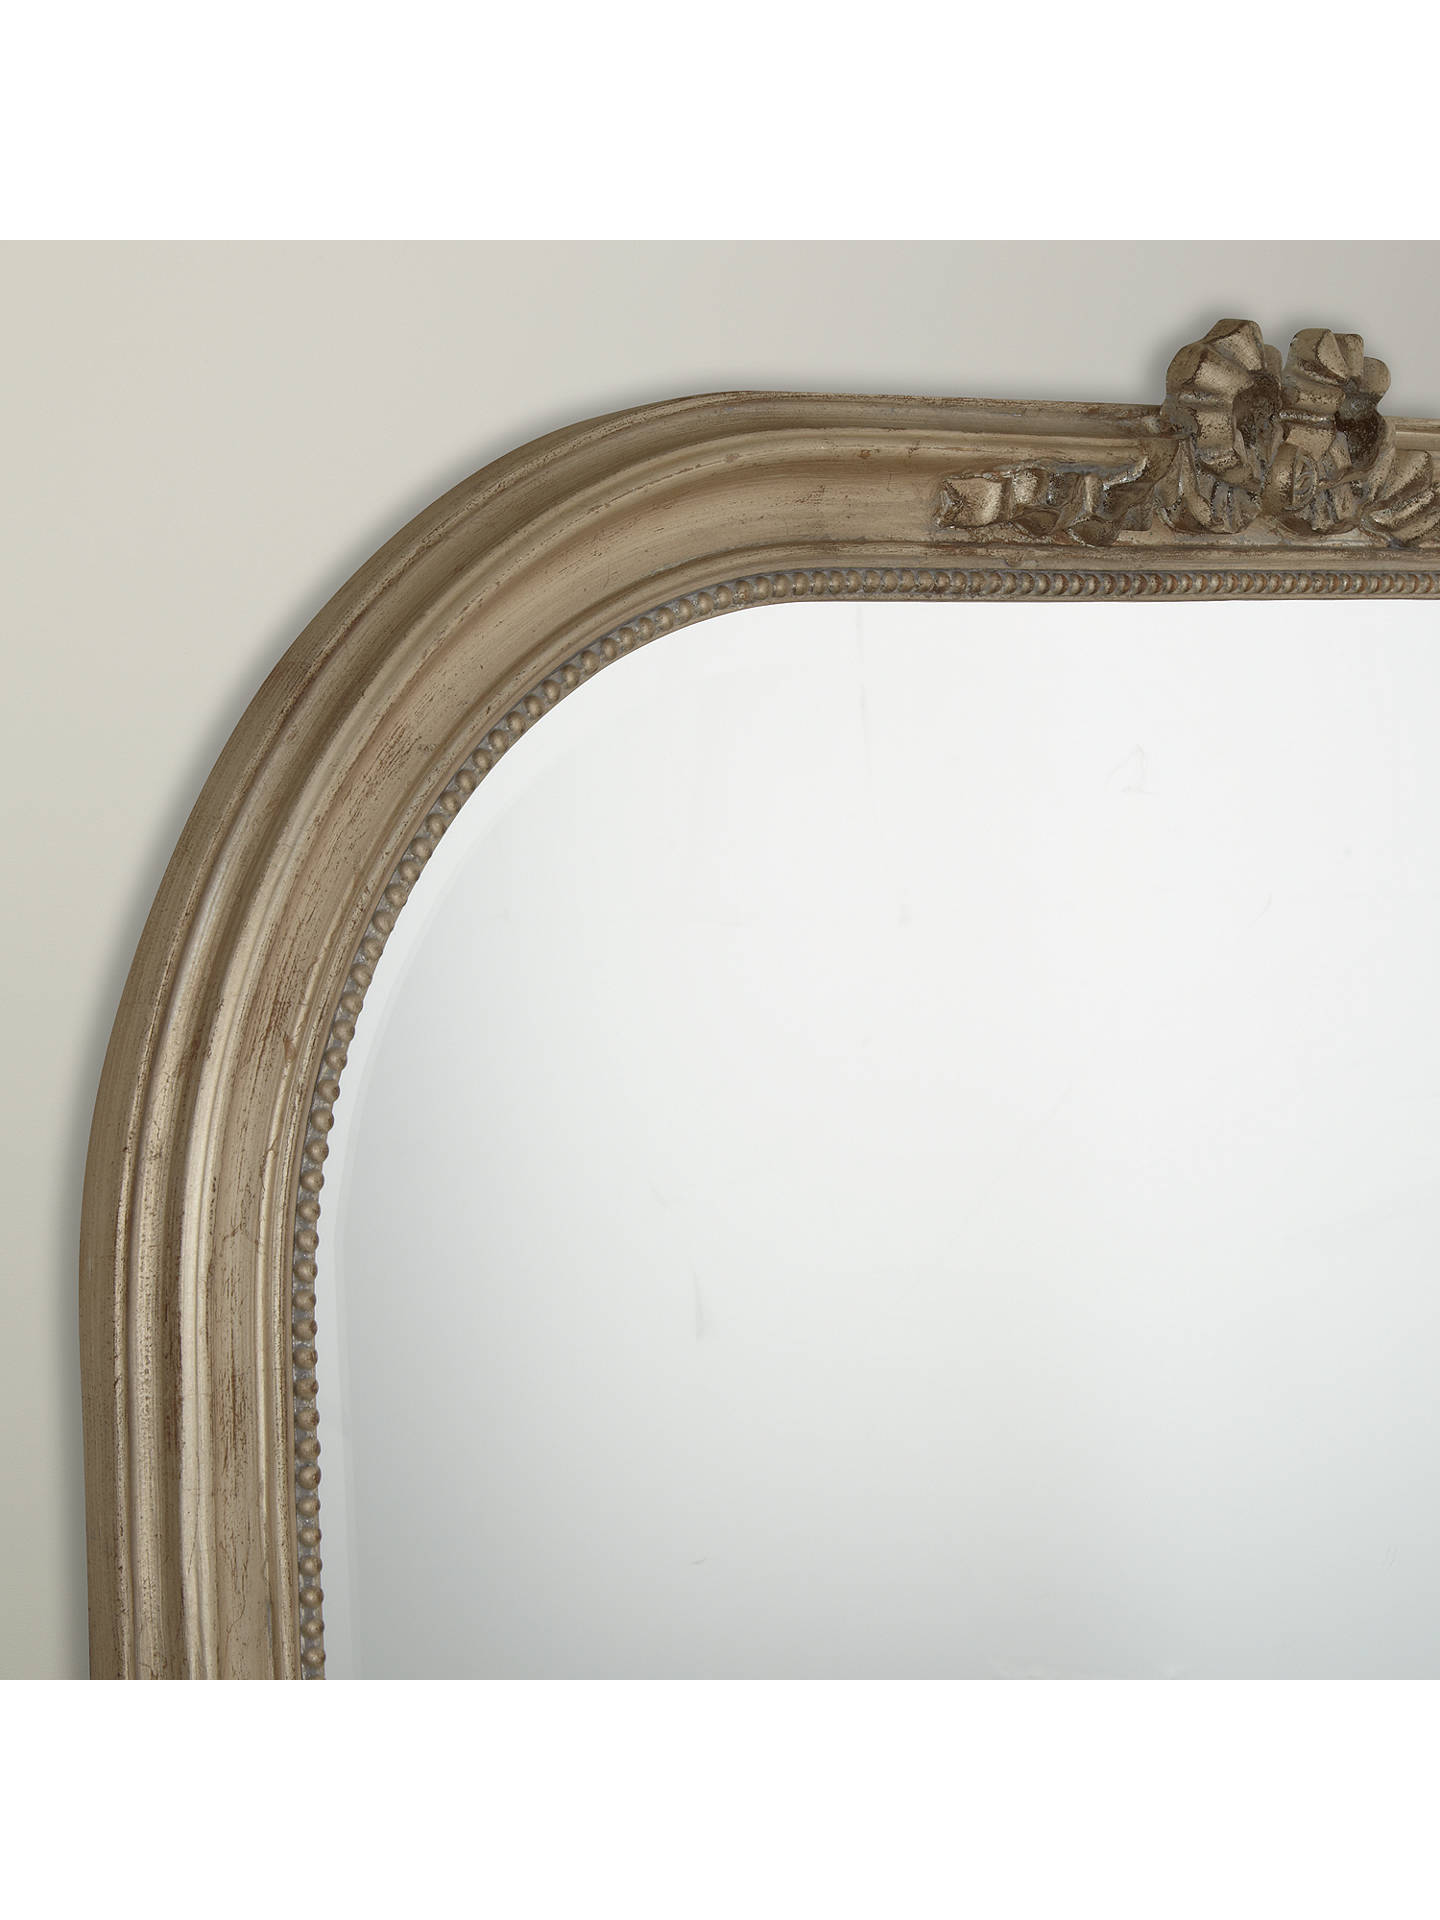 BuyOvermantel Bow Mirror, Gold, 95 x 106cm Online at johnlewis.com